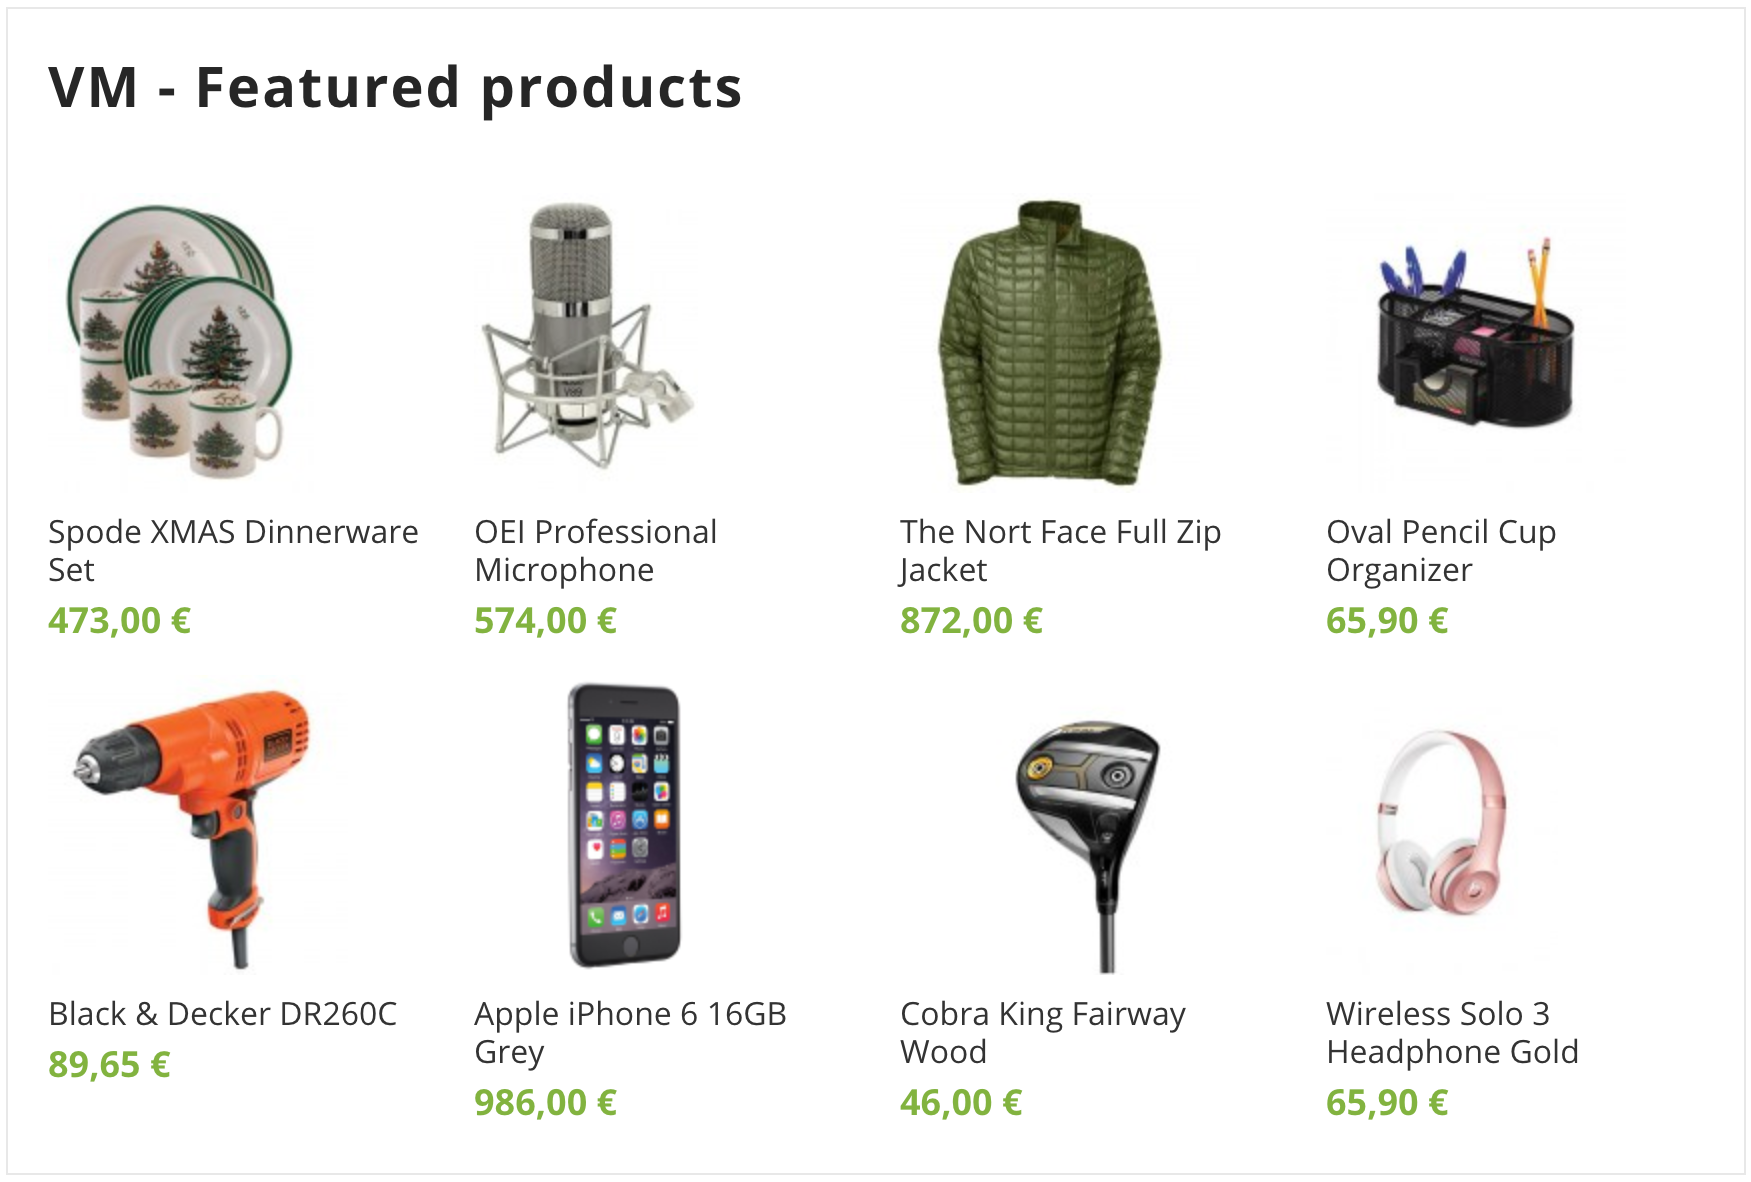 Home Page Best Seller Products (VirtueMart)